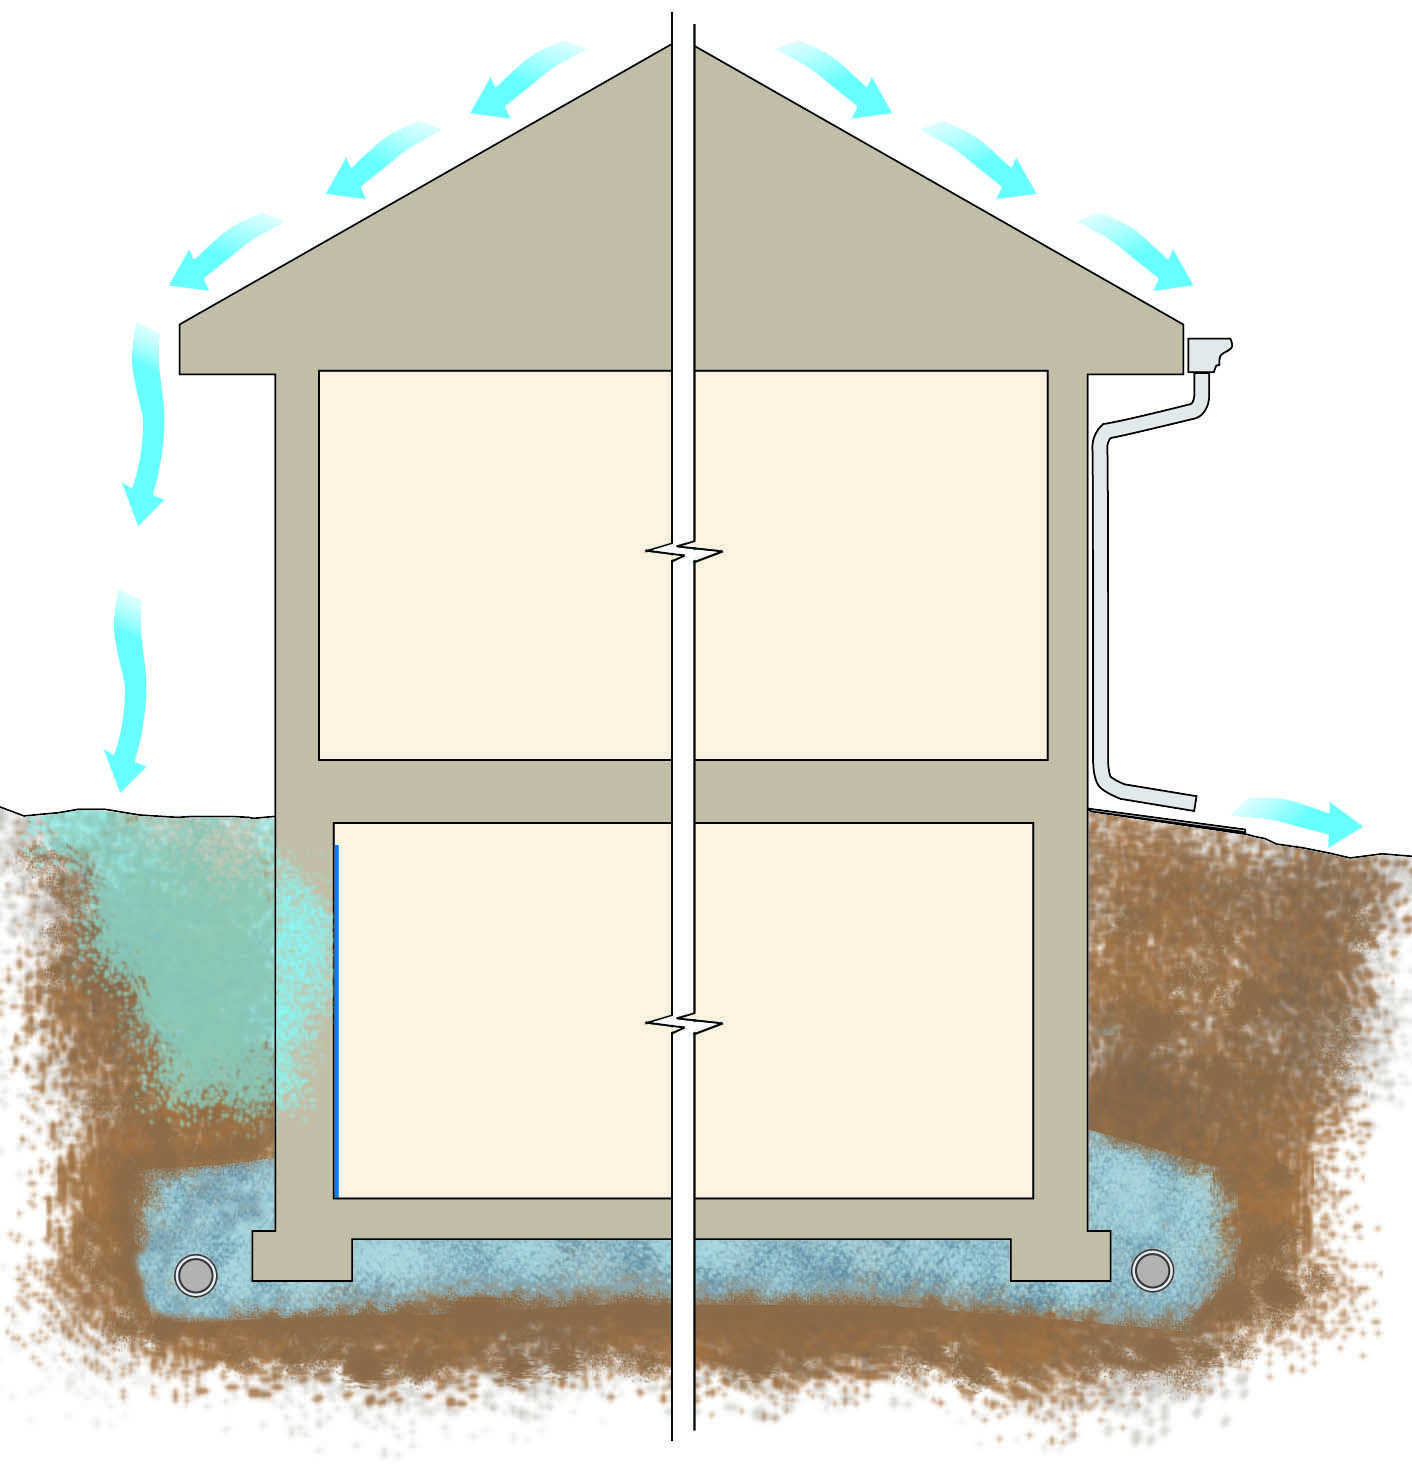 Waterproofing a basement from the inside - Fine Homebuilding